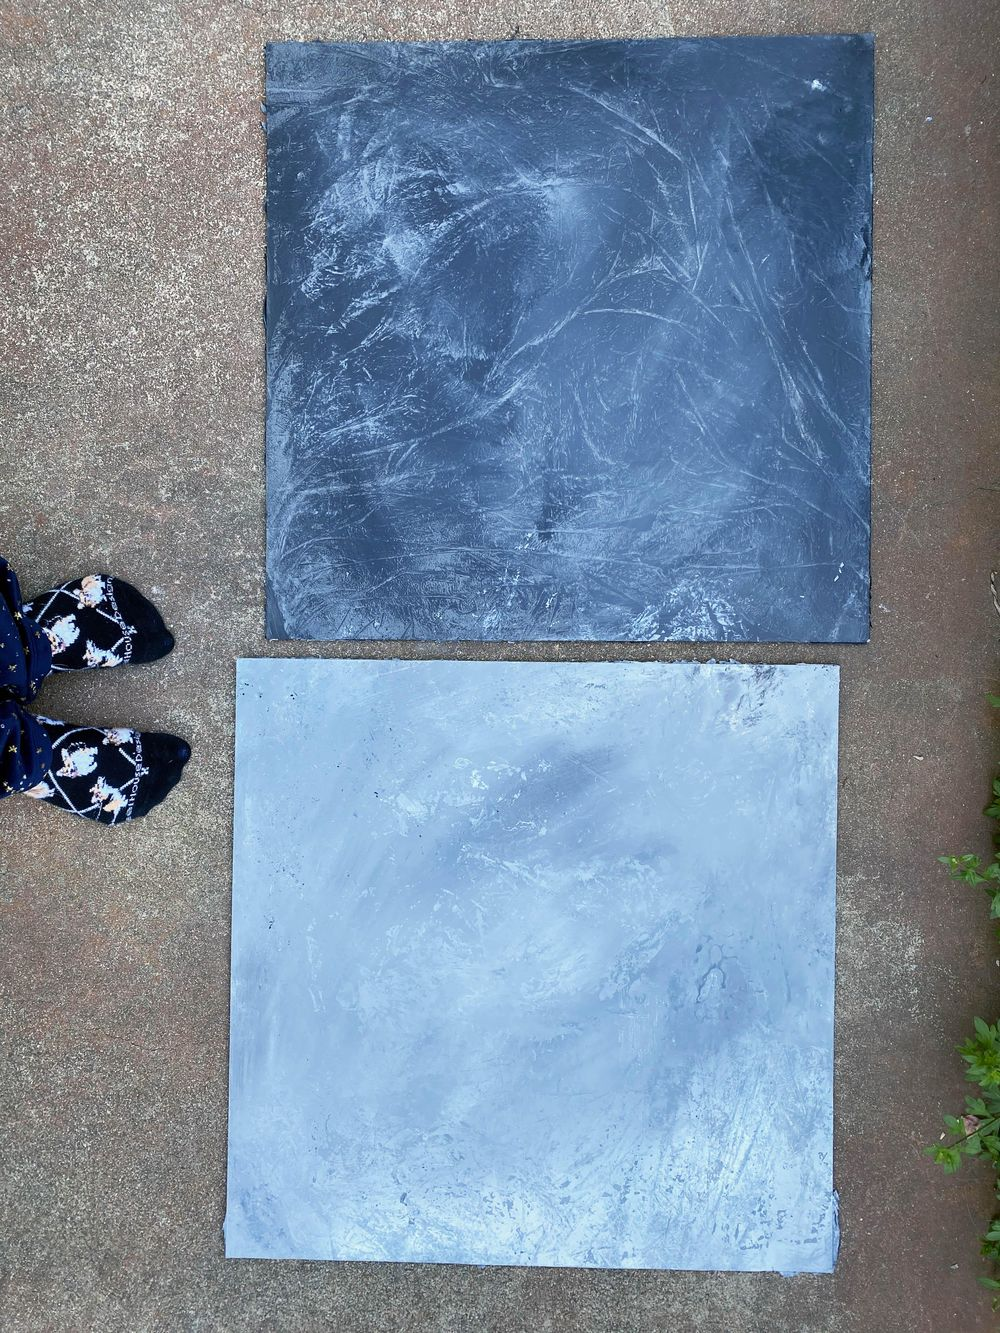 Concrete-Look Photo Backdrops - image 1 - student project